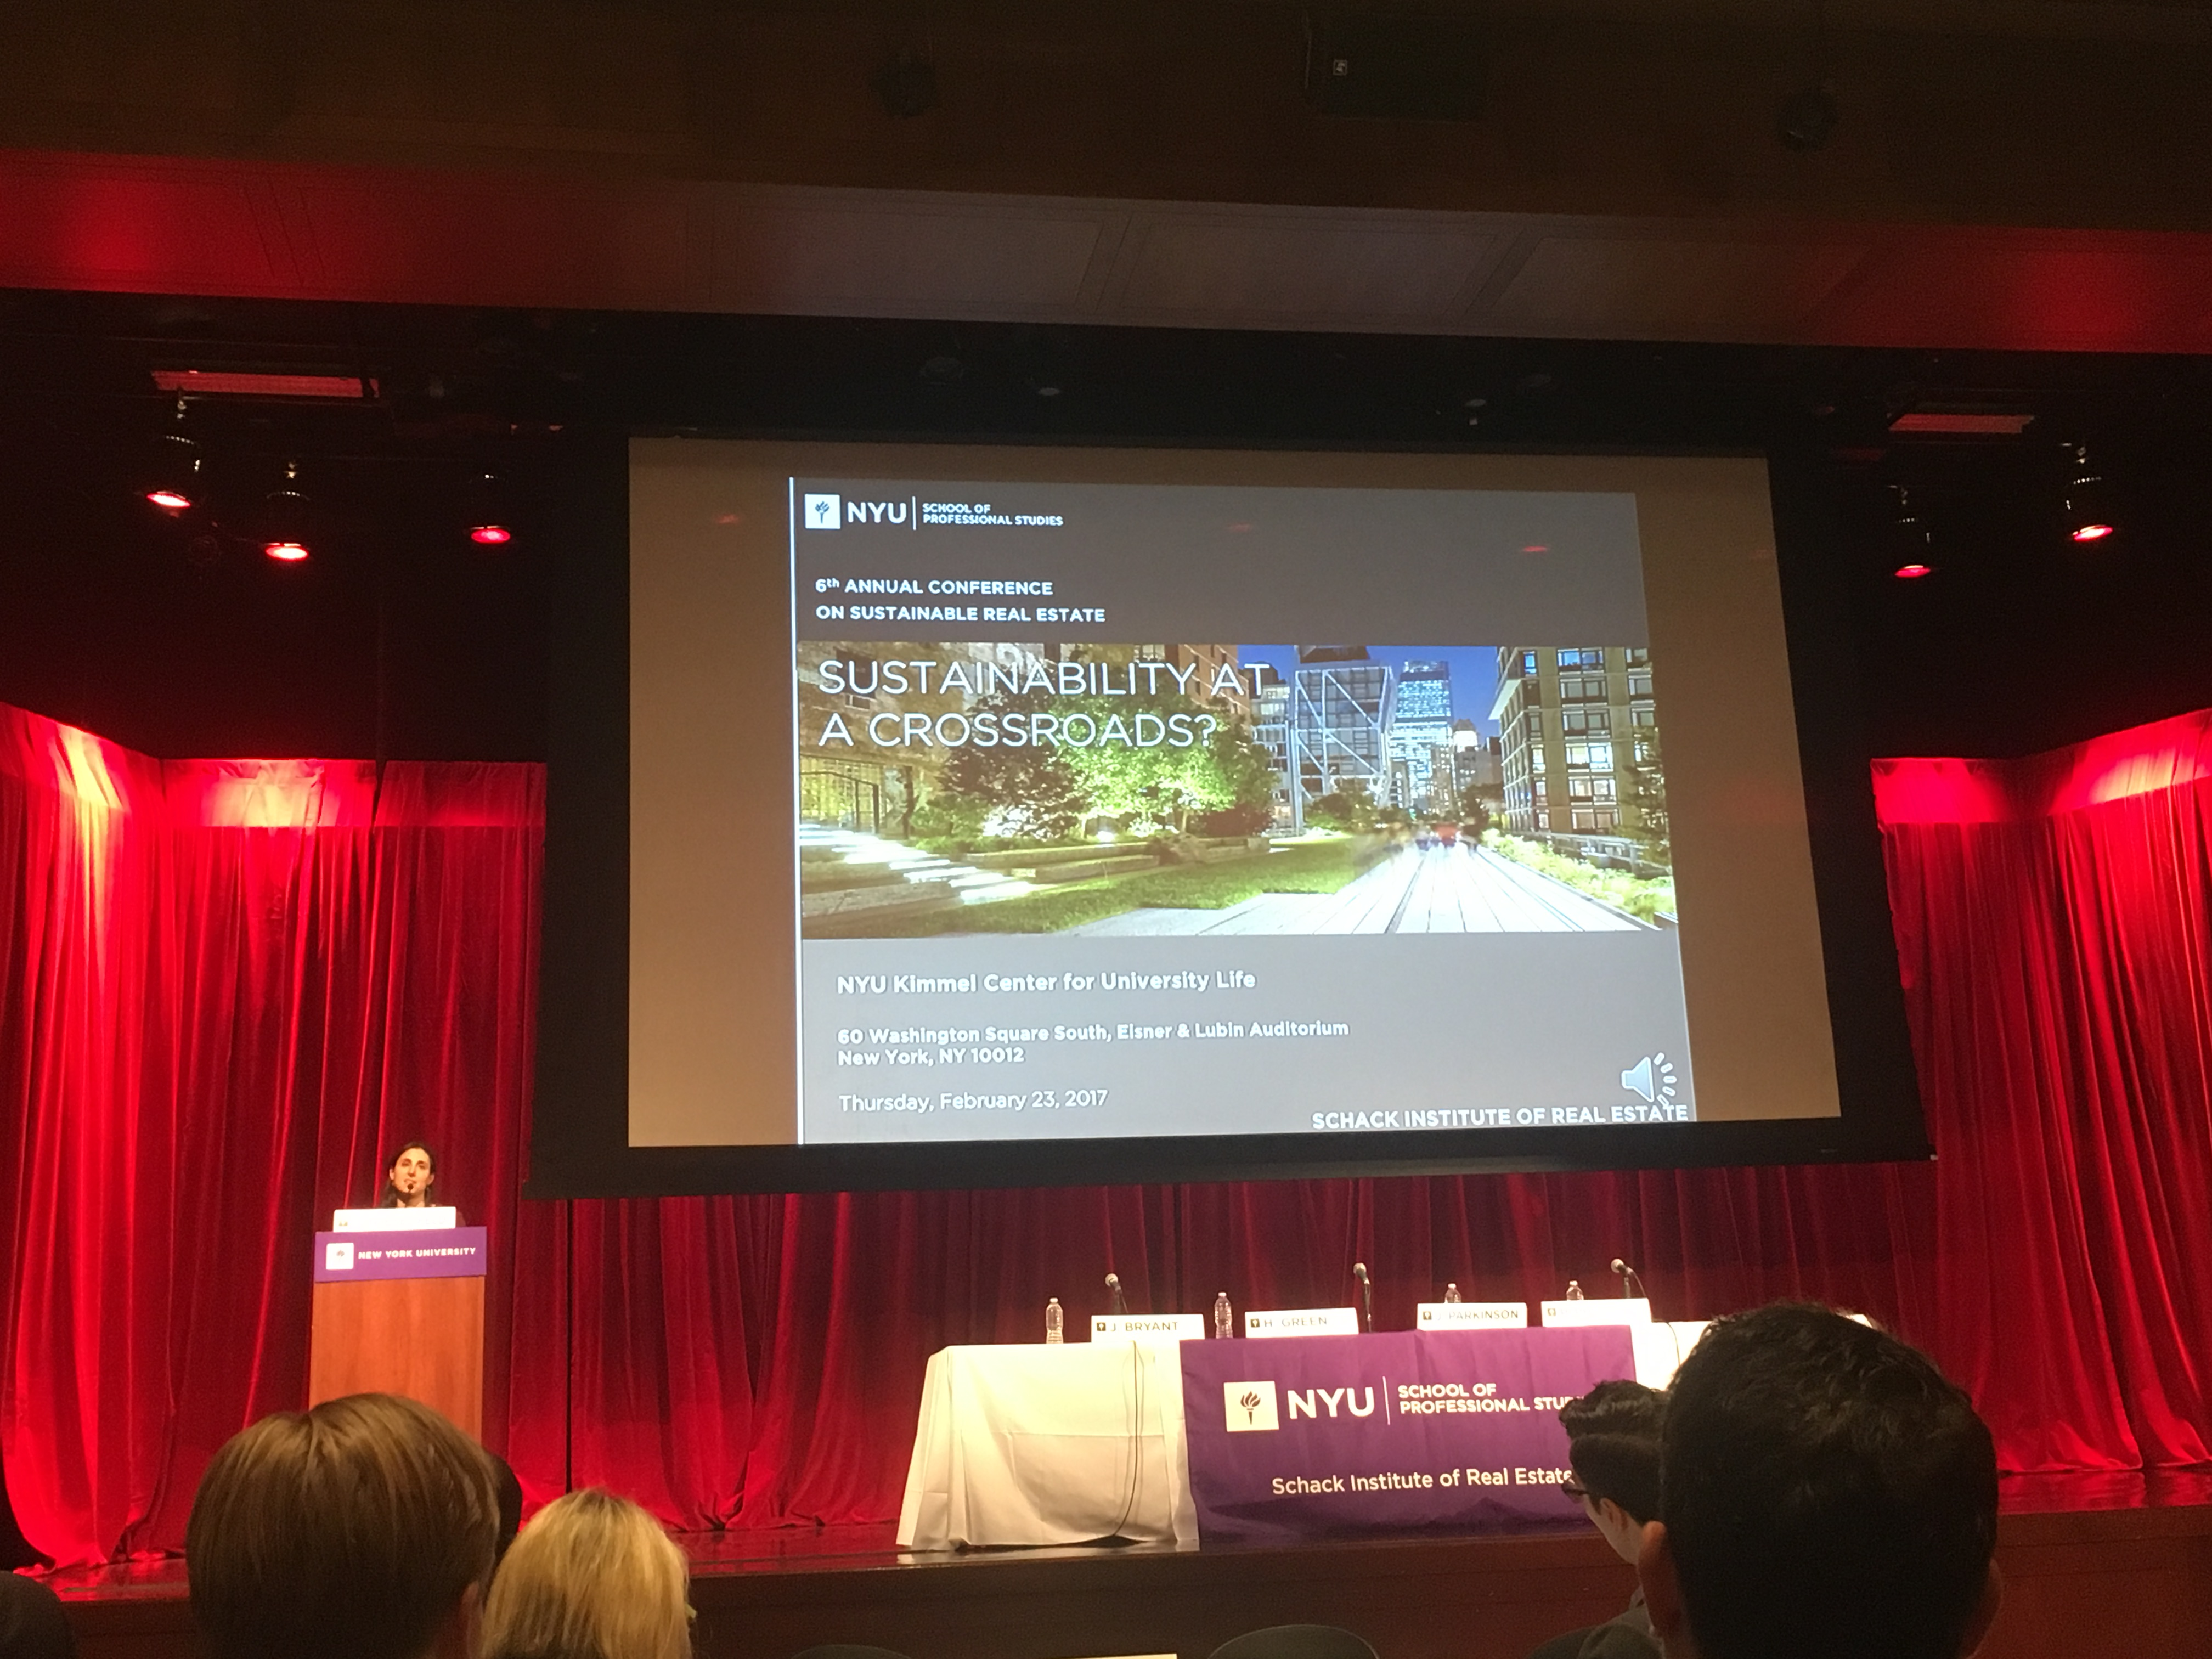 Danielle Spiegel-Feld, Executive Director, Guarini Center on Environmental, Energy and Land Use Law, New York University School of Law